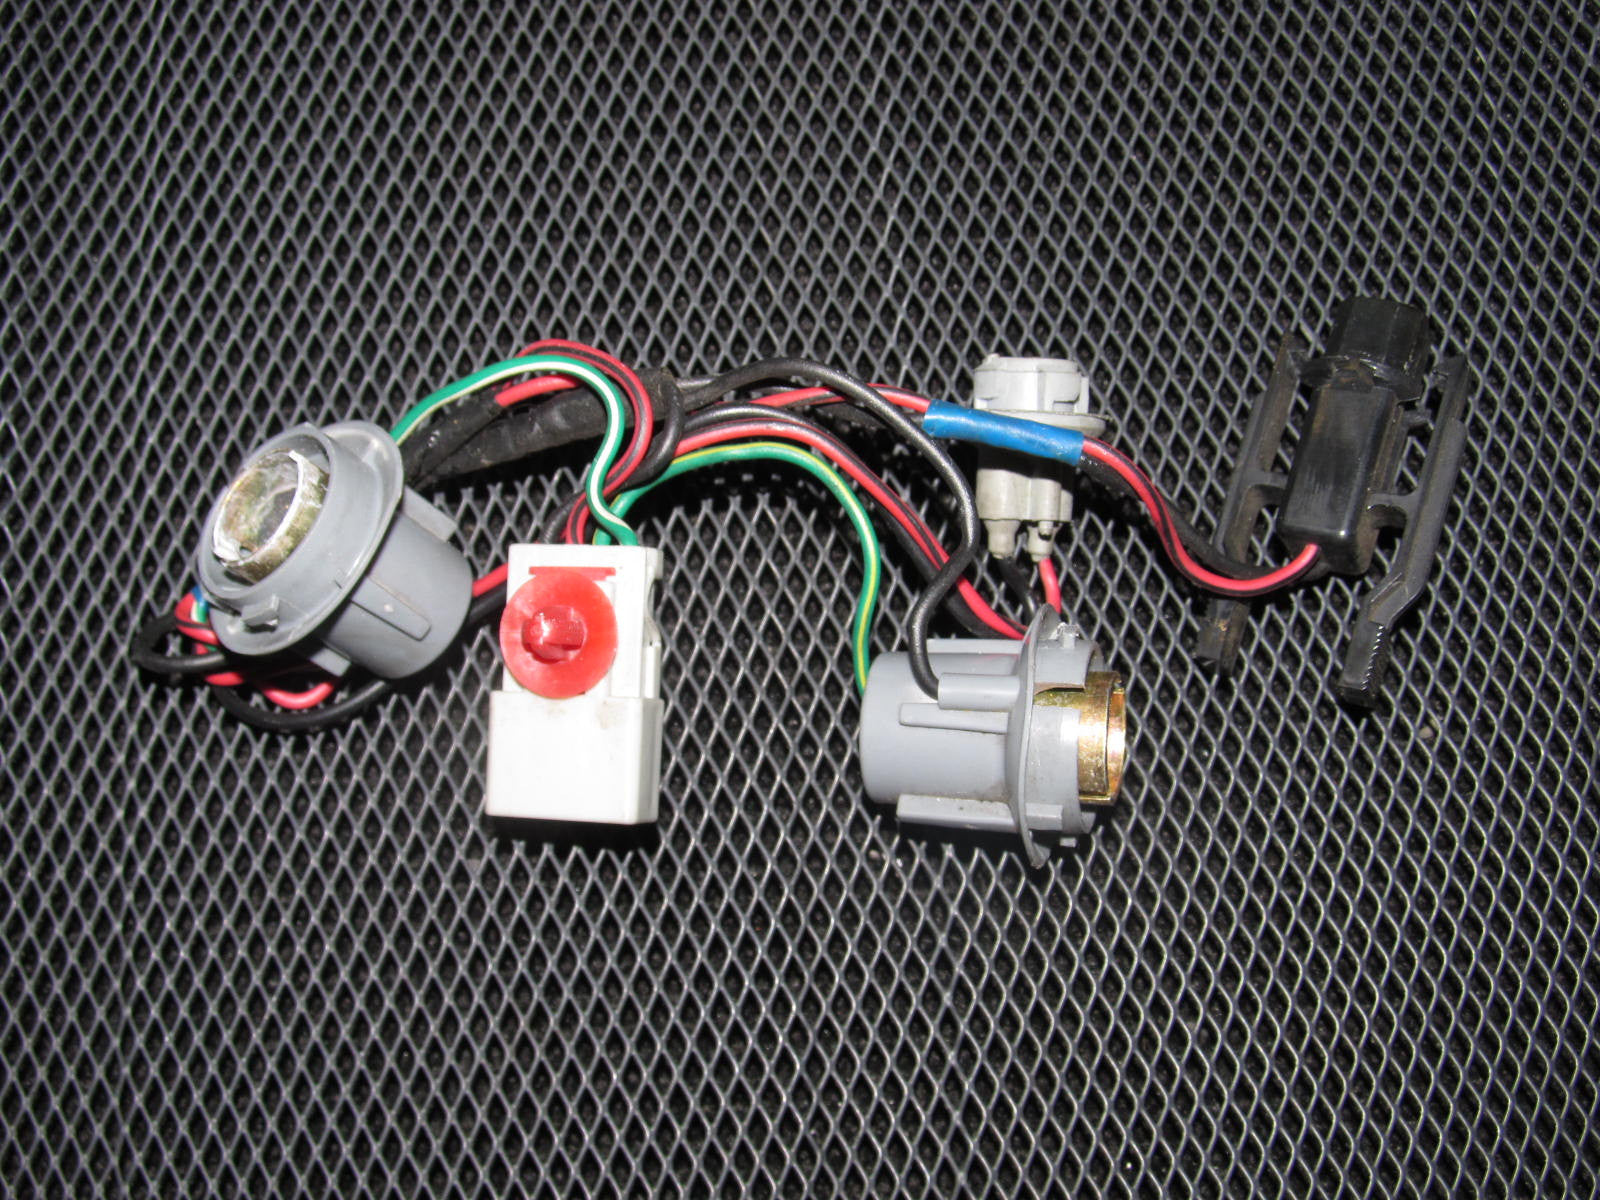 88 91 Honda Crx Oem Tail Light Bulb Socket Harness Wiring